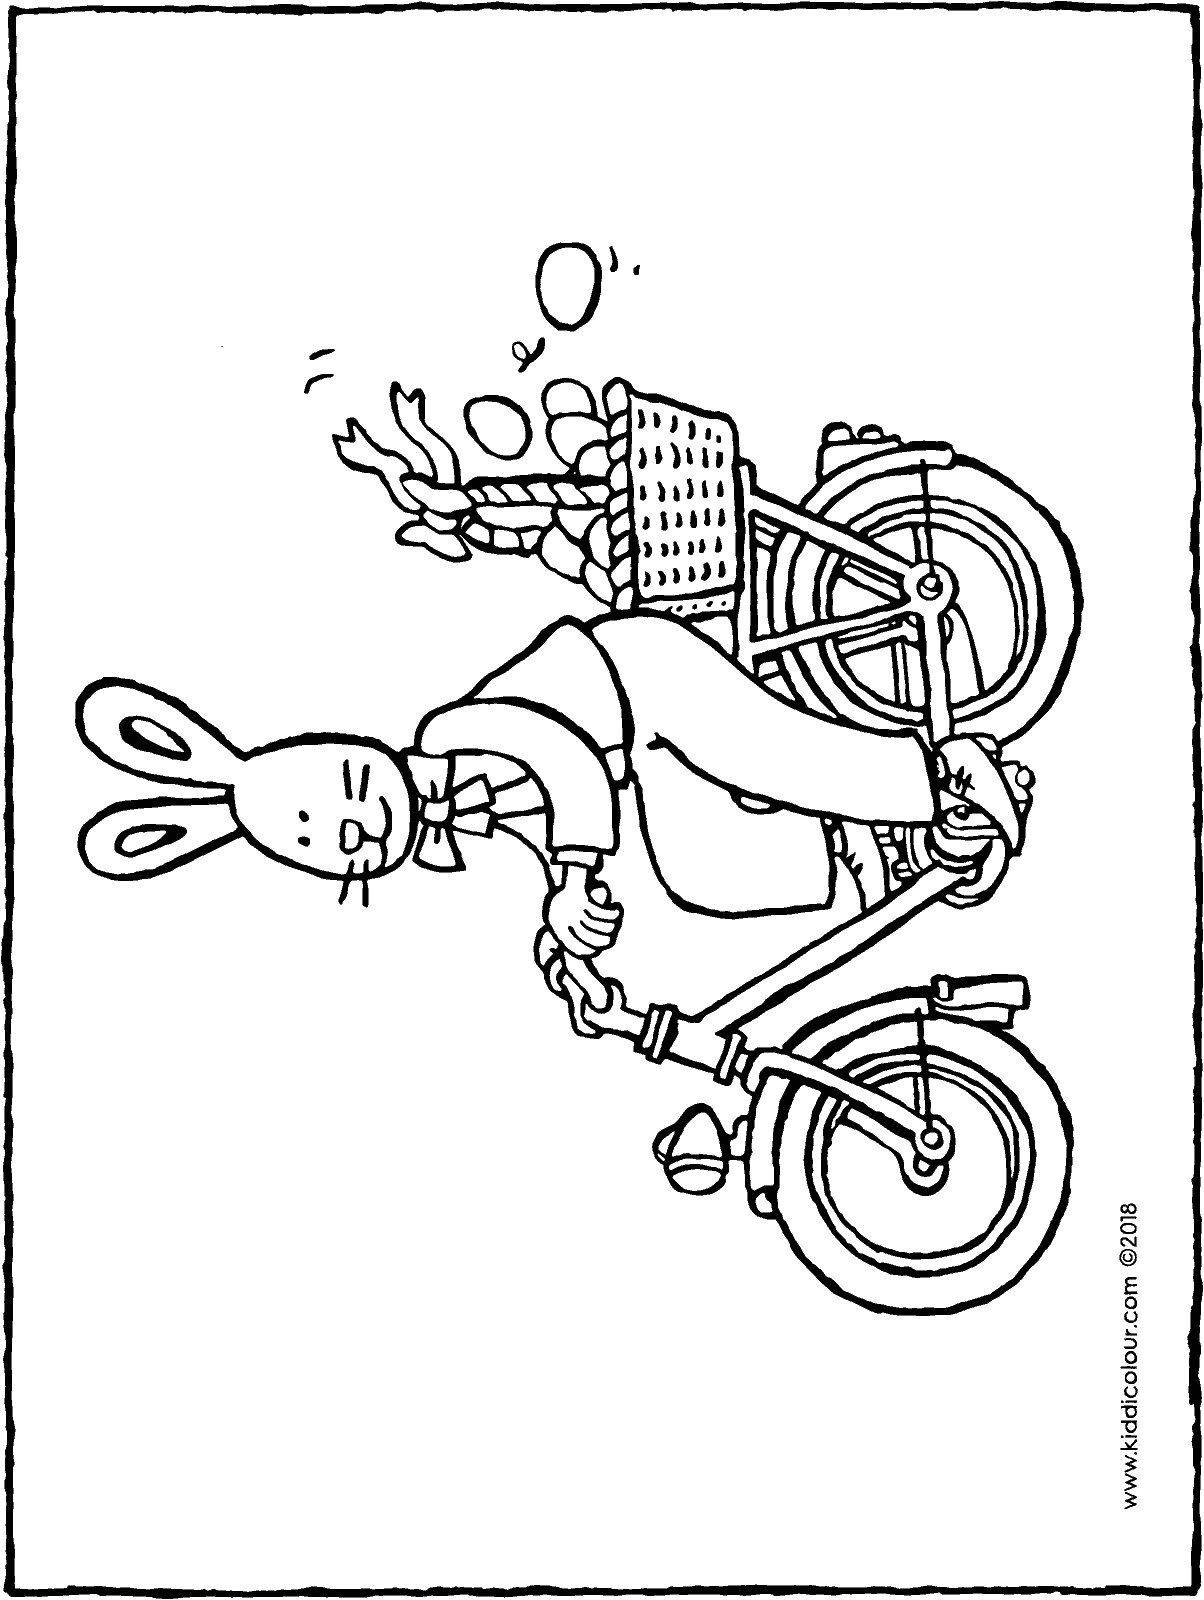 Easter bunny on a bicycle colouring page drawing picture 01H